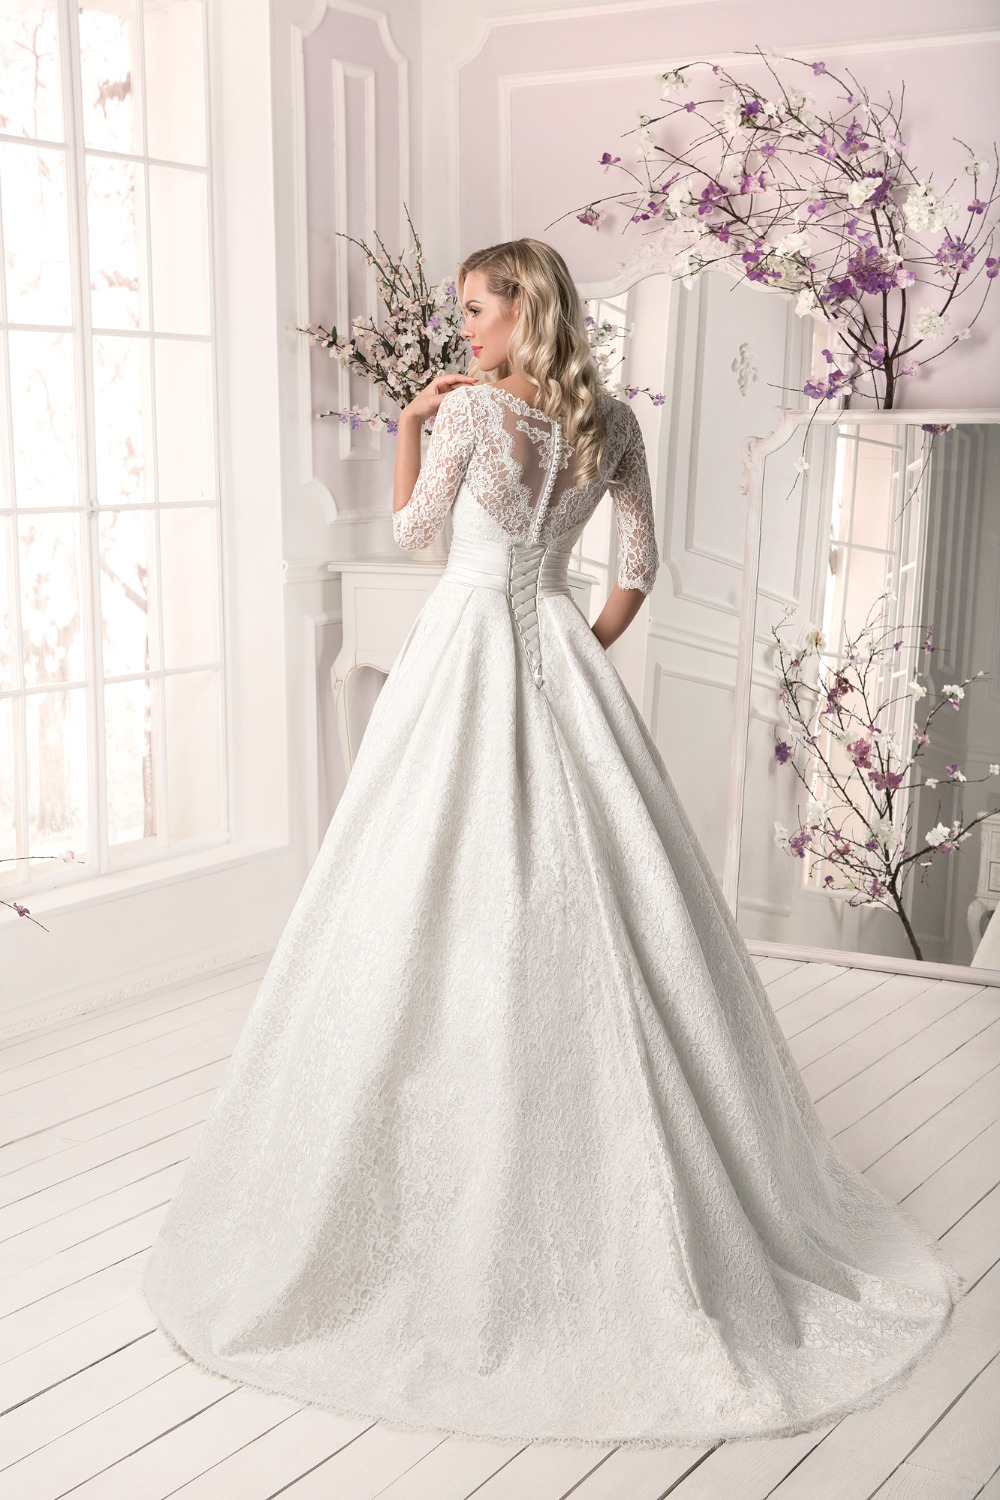 Custom vestido de noiva A Line Three Quarter Sleeve With Detachable Jacket 2018 Lace bridal gown mother of the bride dresses in Mother of the Bride Dresses from Weddings Events